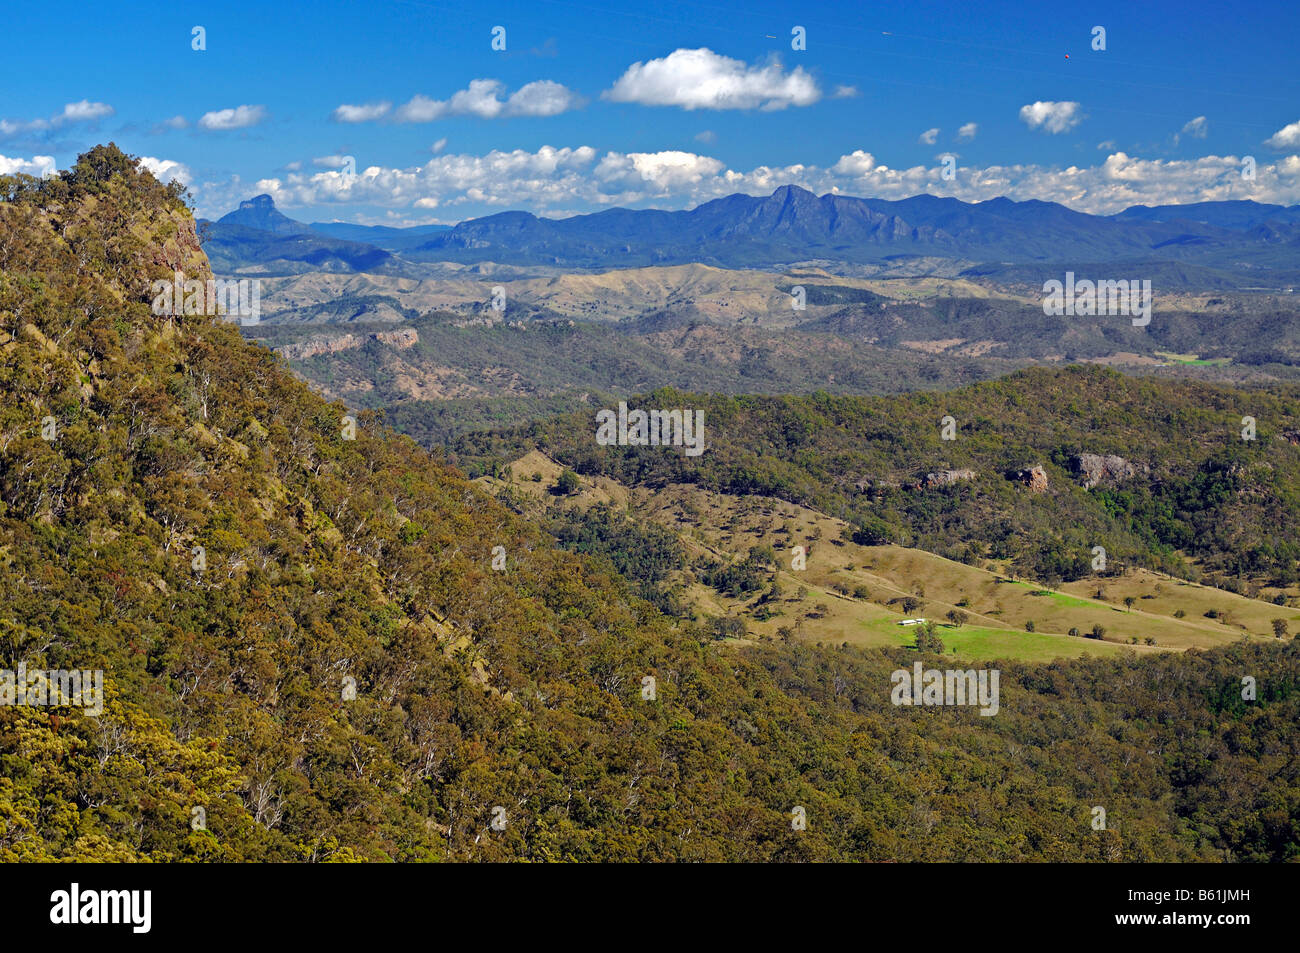 View over the mountains in the Lamington National Park, Australia - Stock Image